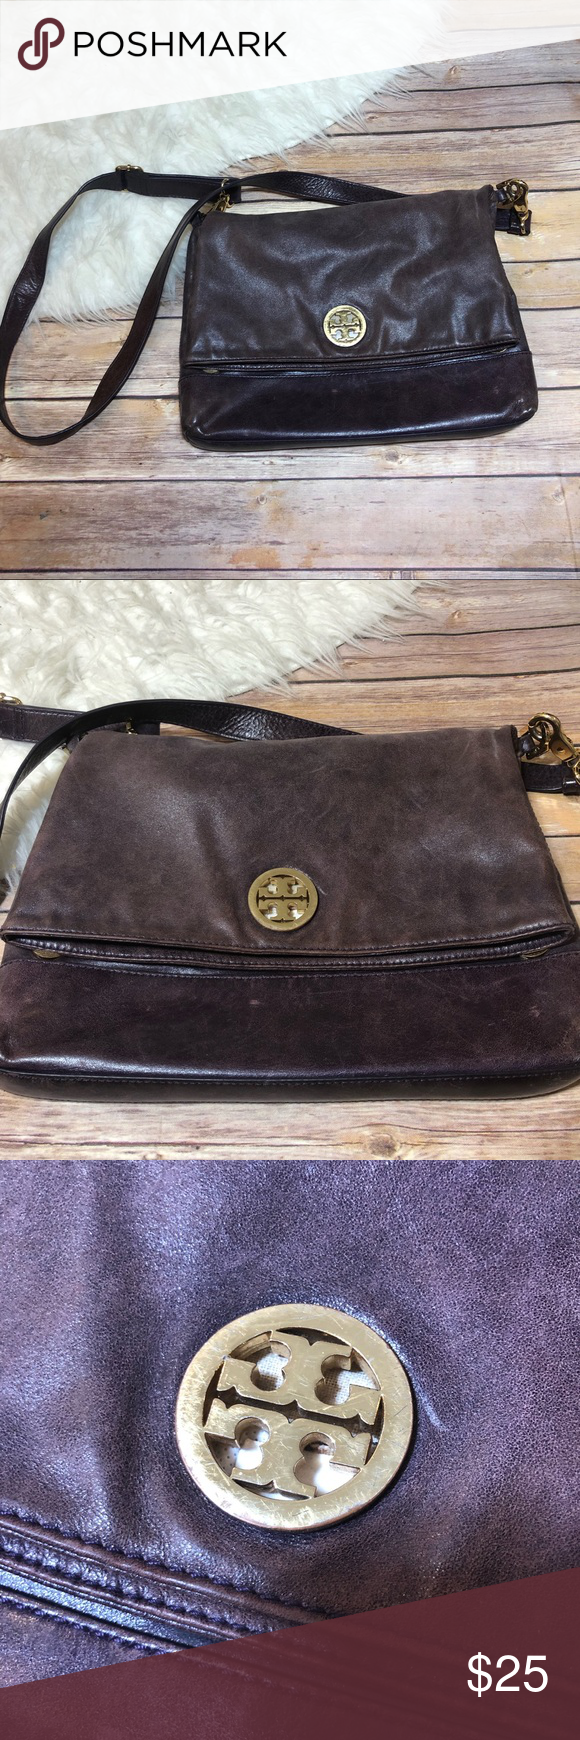 50b71241c502 Tory Burch Purple crossbody flap over bag Pre-owned I m ok condition bag.  100% Authentic Tory Burch. Color is a deep purple with gold colored  hardware.